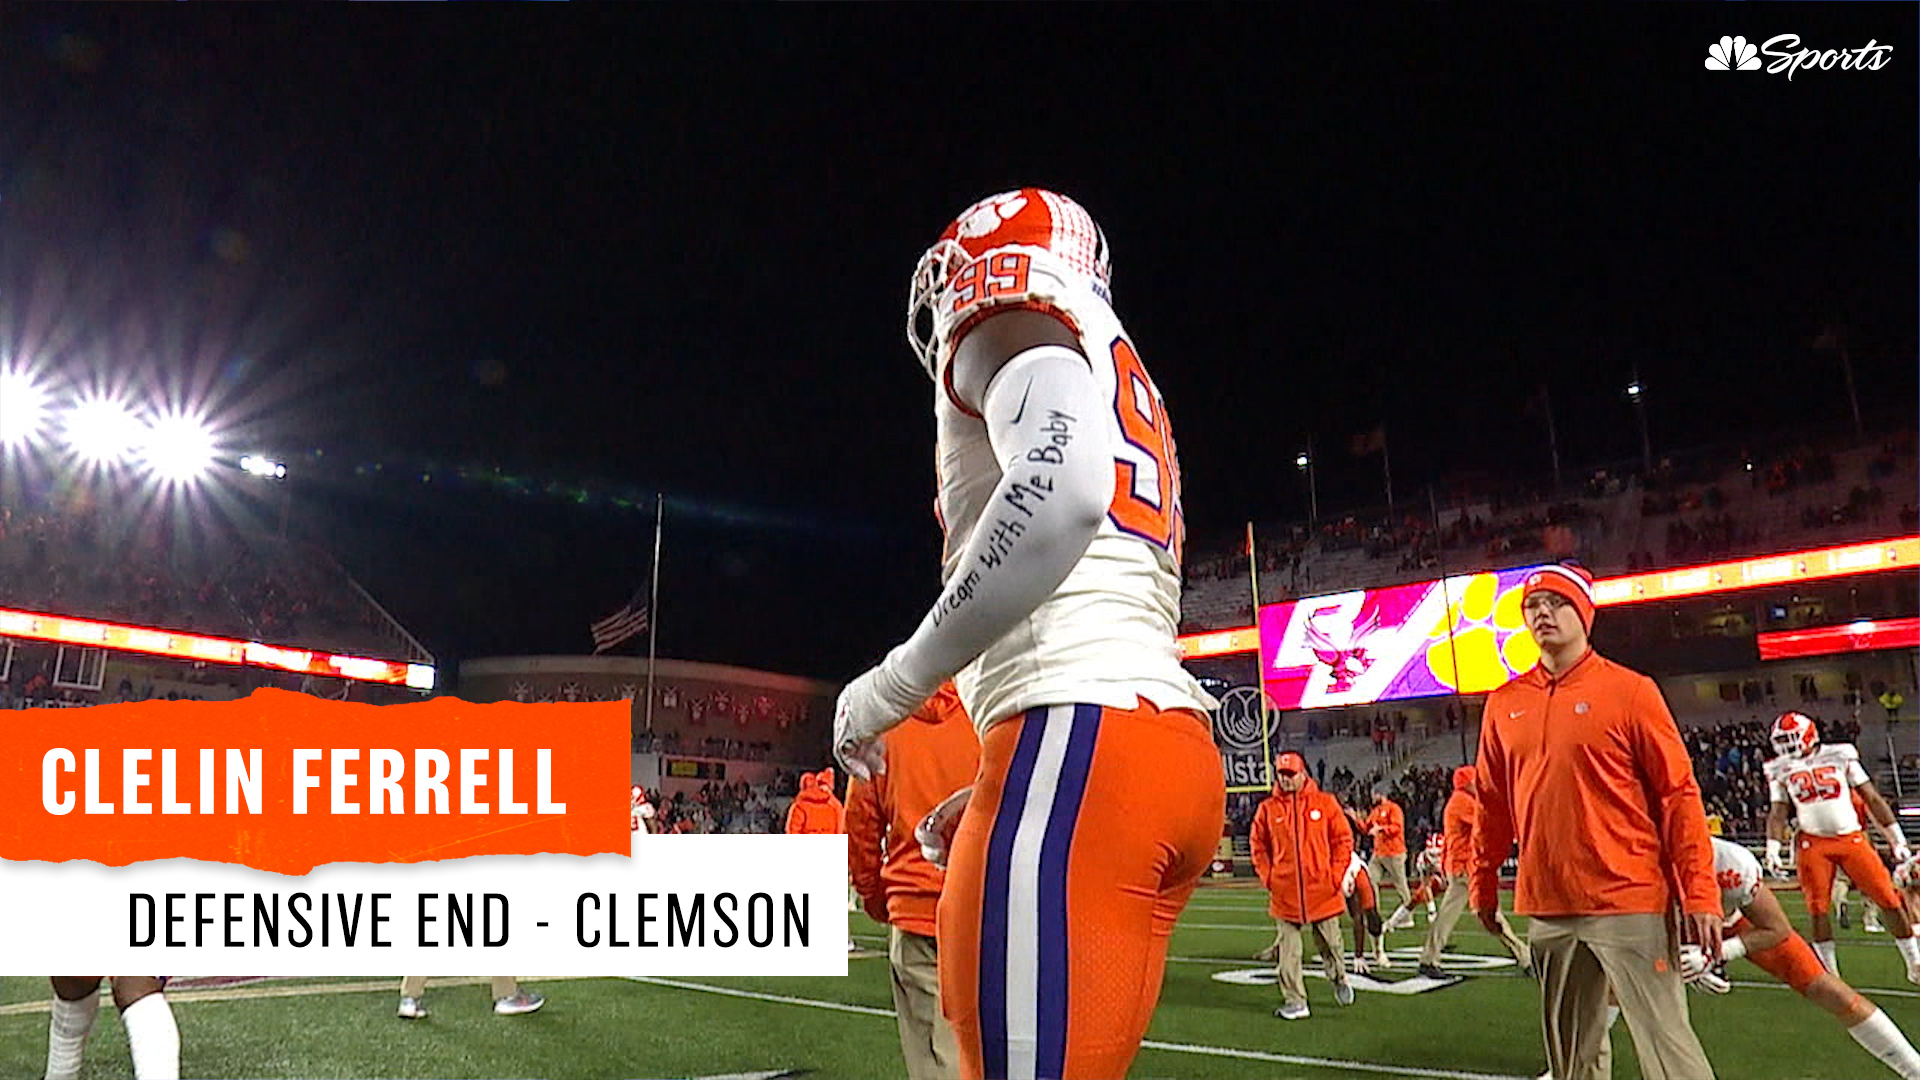 """Charley Casserly profiles Clemson's """"complete player,"""" Clelin Ferrell"""